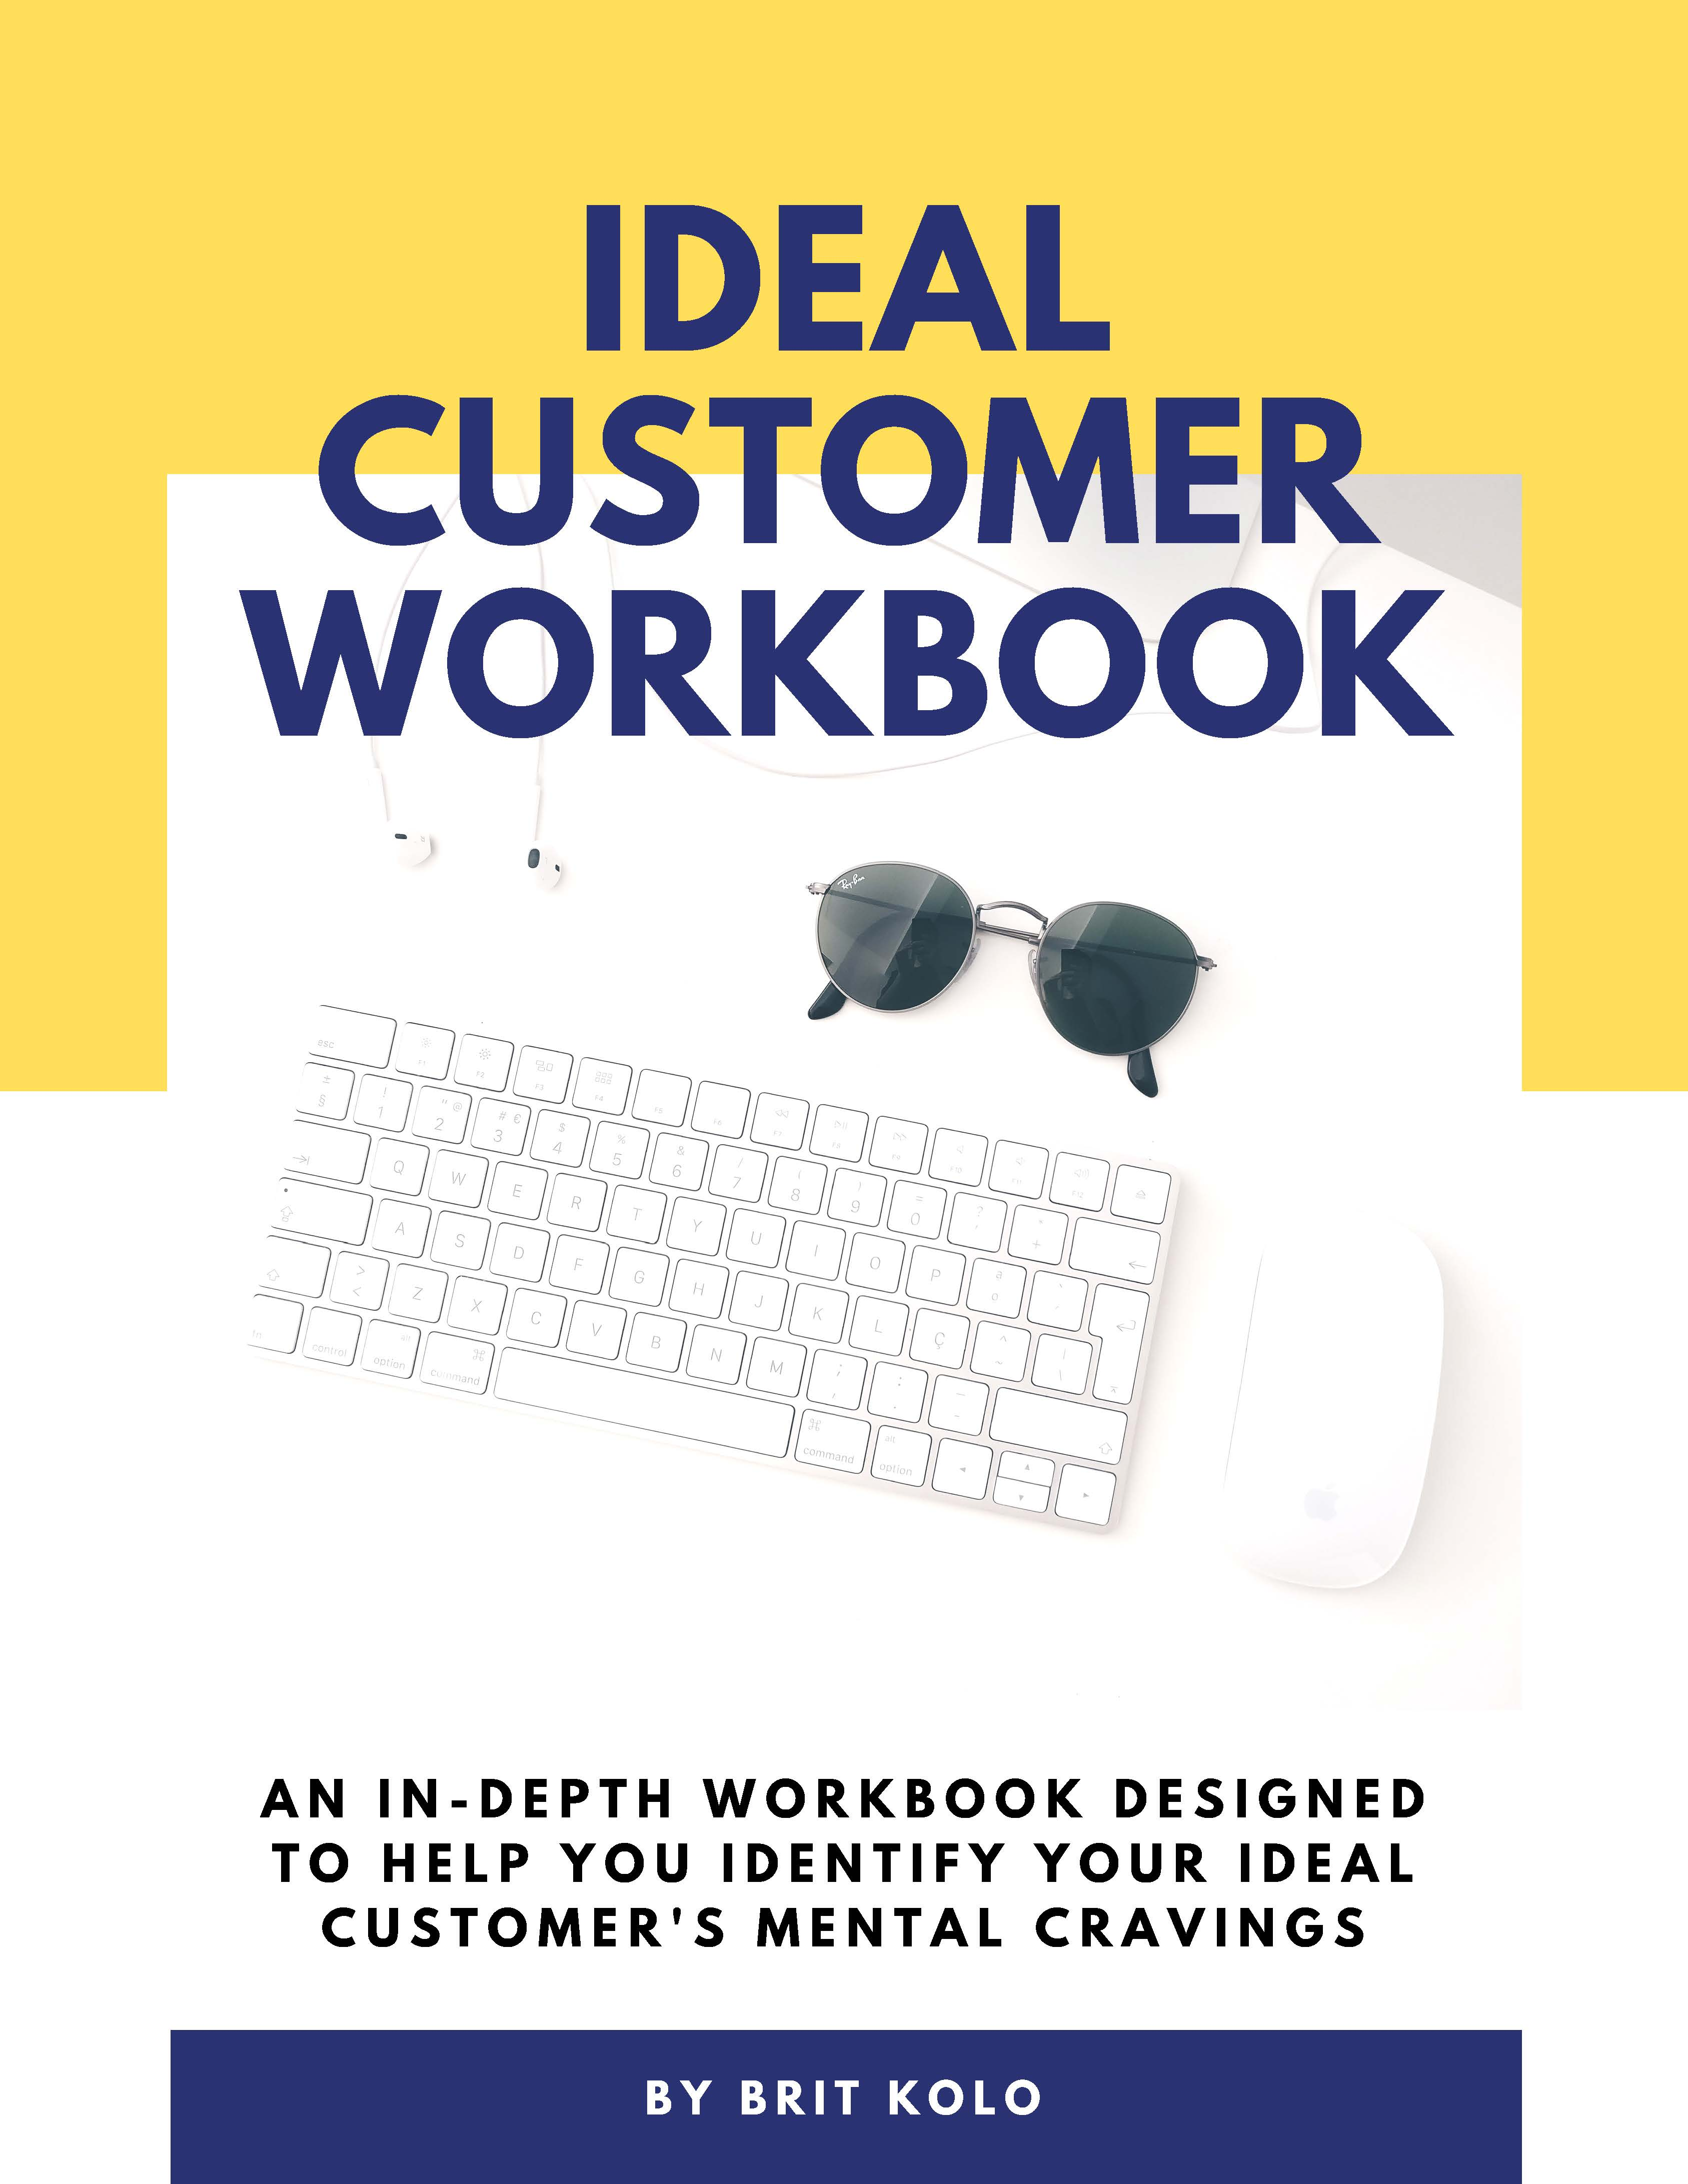 The Ideal Customer Workbook is designed to help you identify your ideal customer's mental cravings so you can adjust your marketing messaging to appeal to them